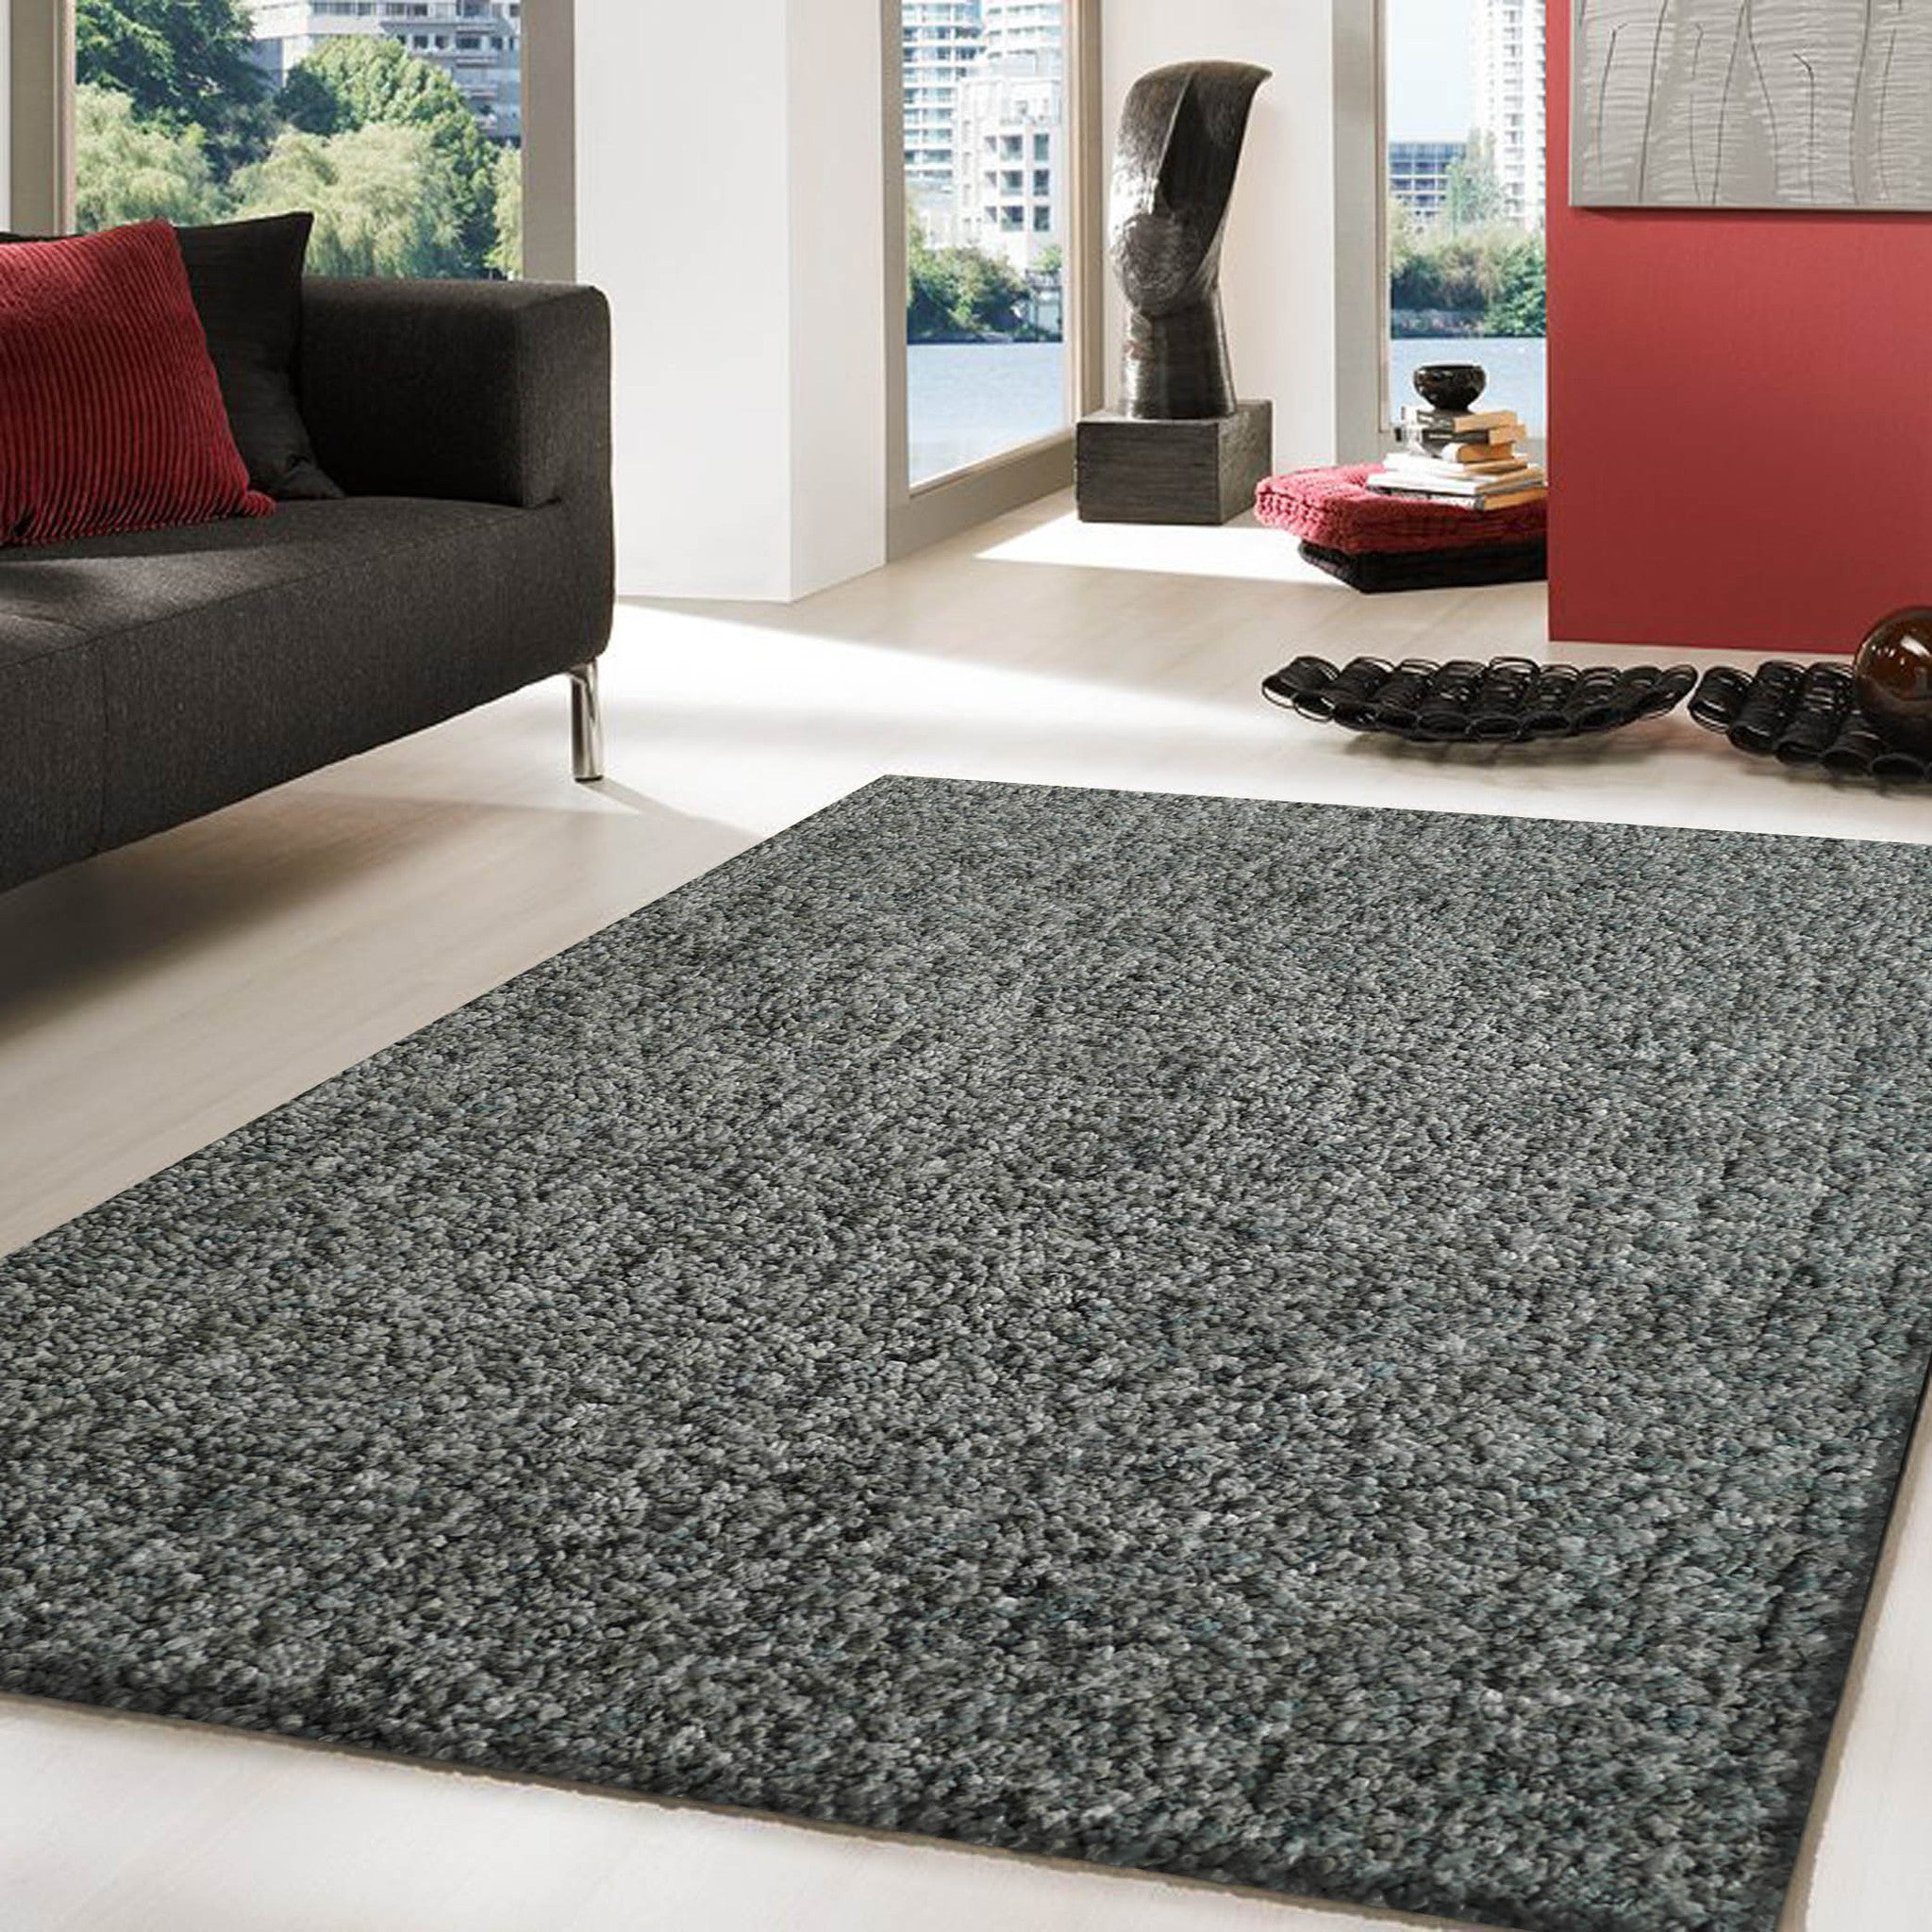 amazing rug for room of living fluffy area plush ideas full thick rugs shaggy amazon size charming